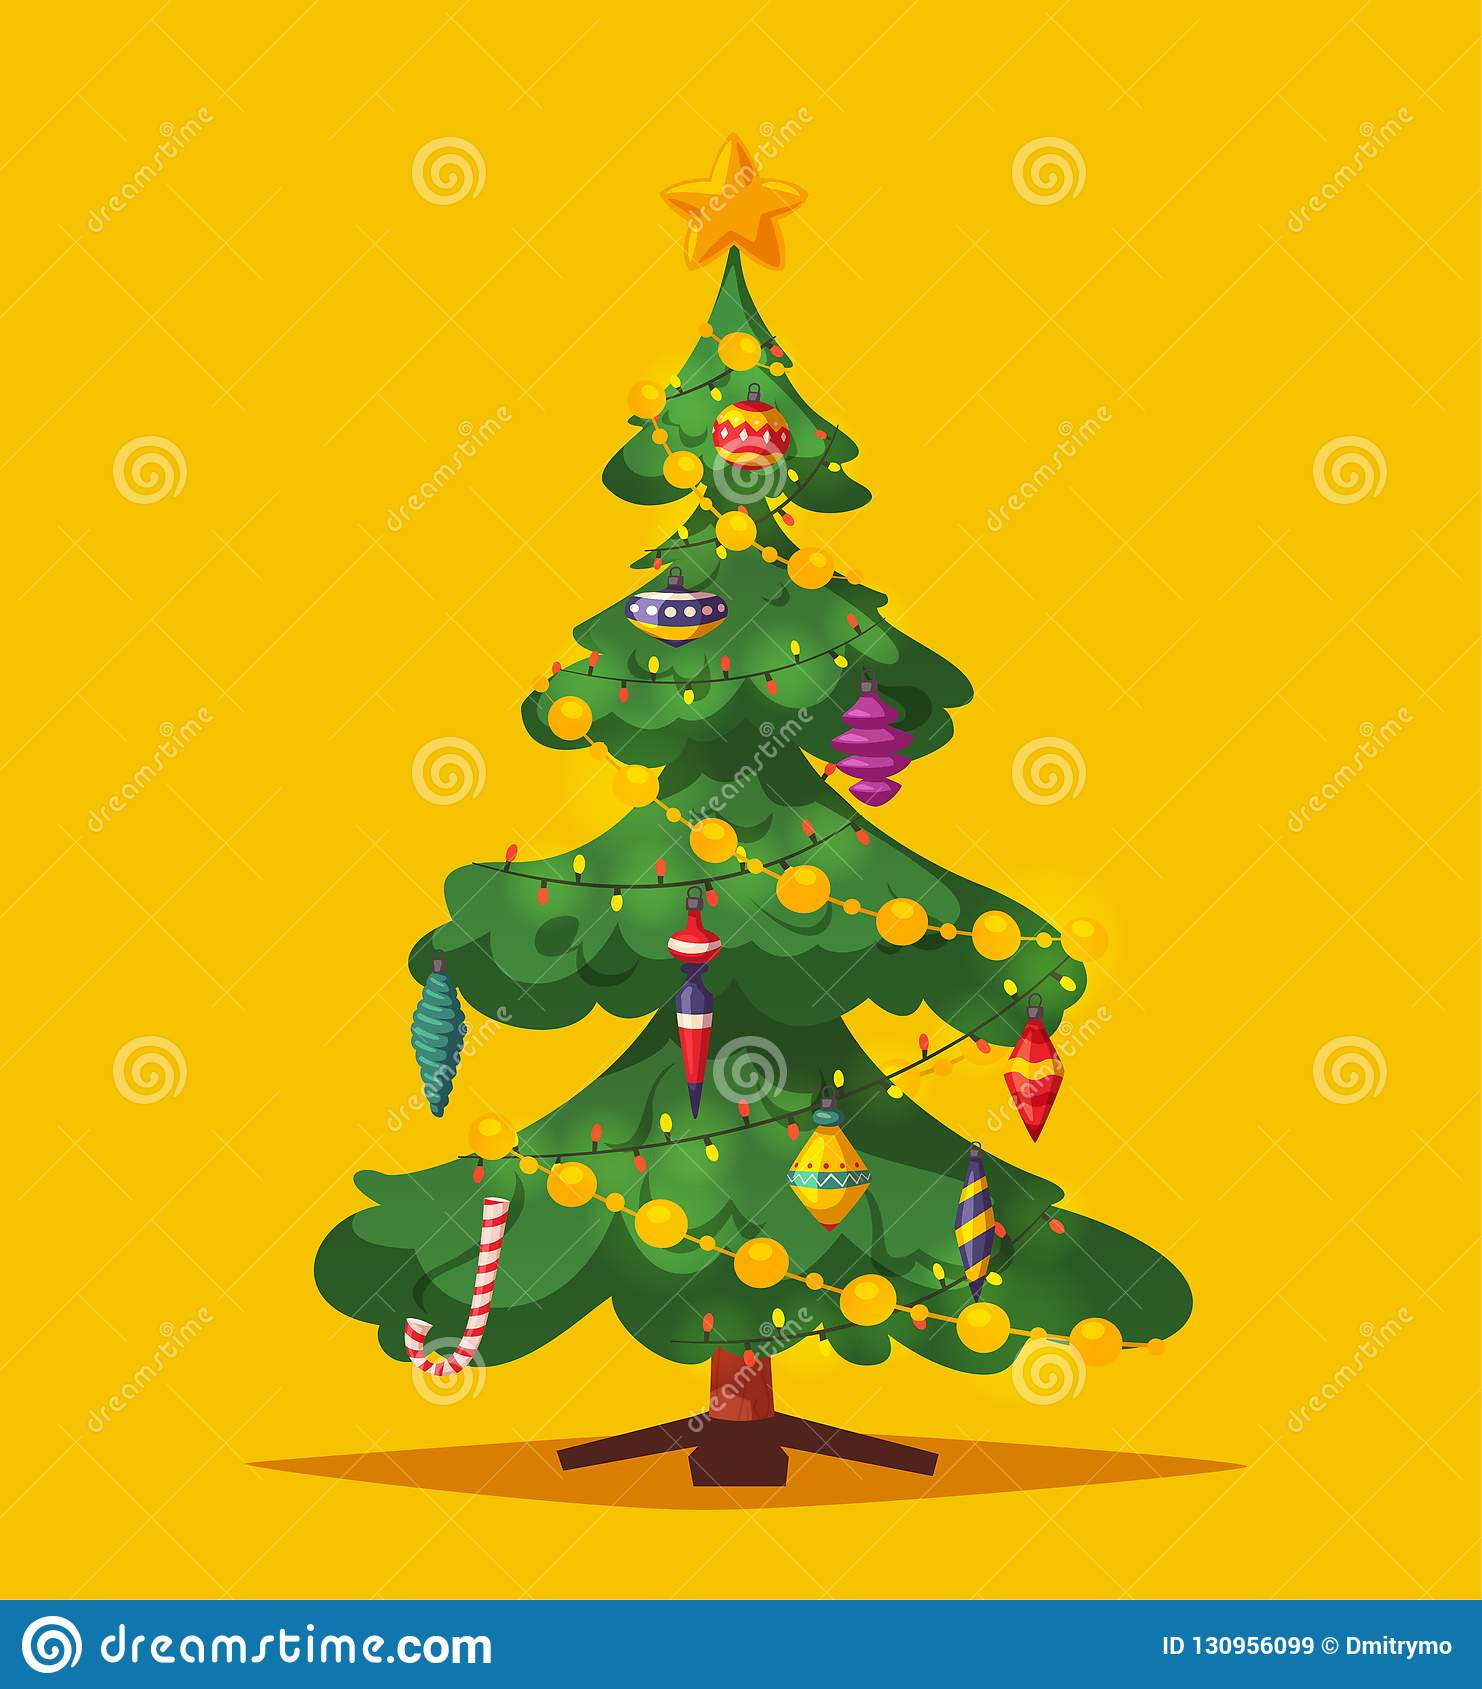 Beautiful Christmas Tree Cartoon Vector Illustration Stock Vector Illustration Of Decorative Happy 130956099